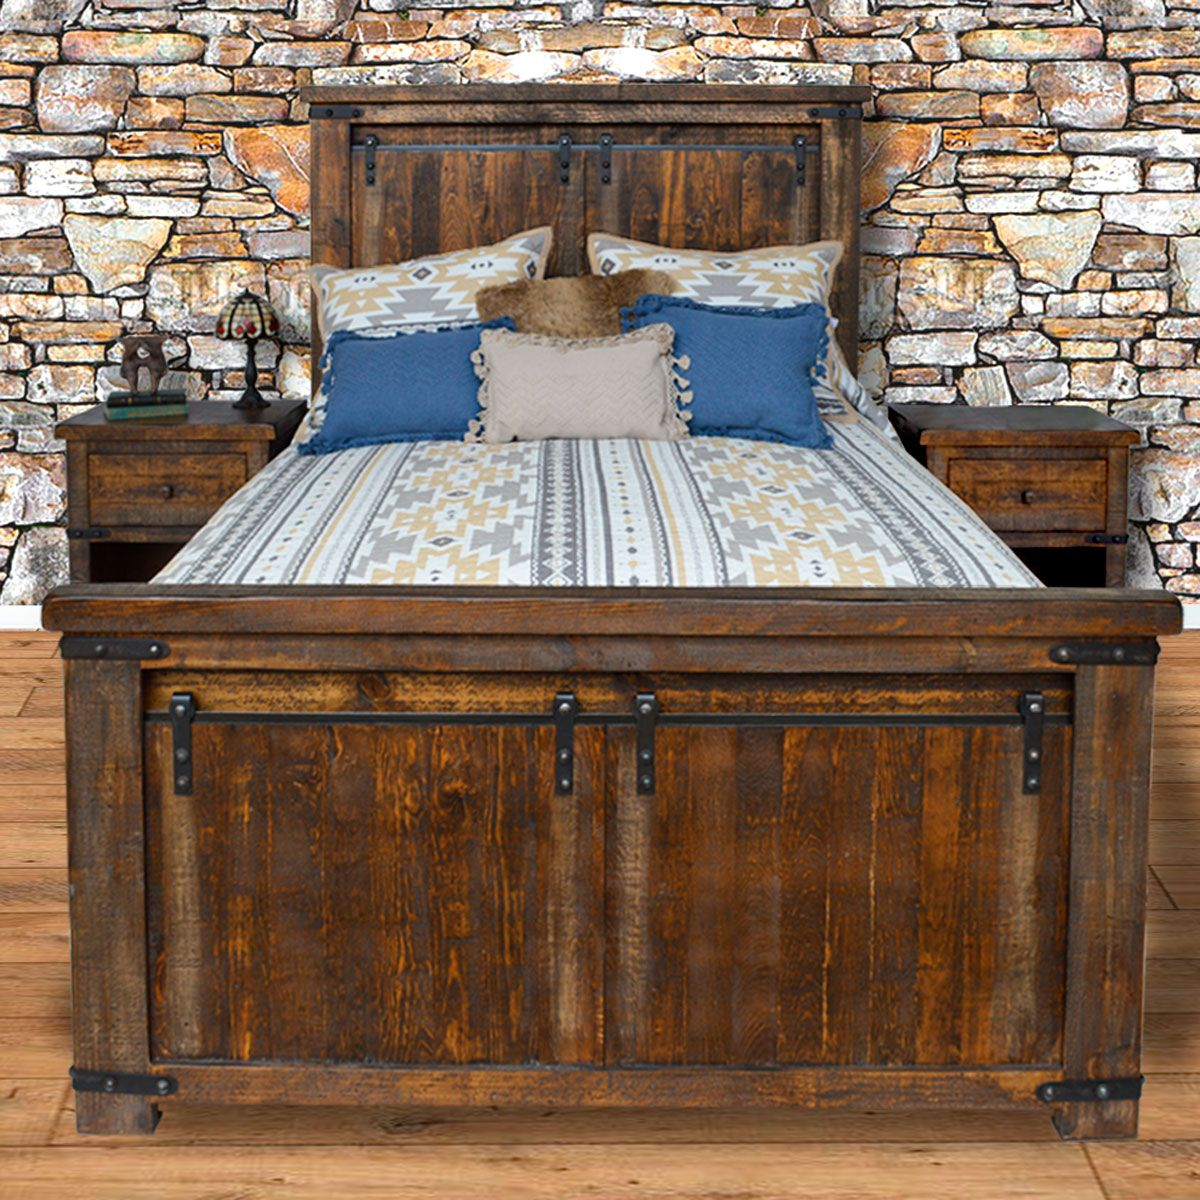 Barn Door Bed - Queen